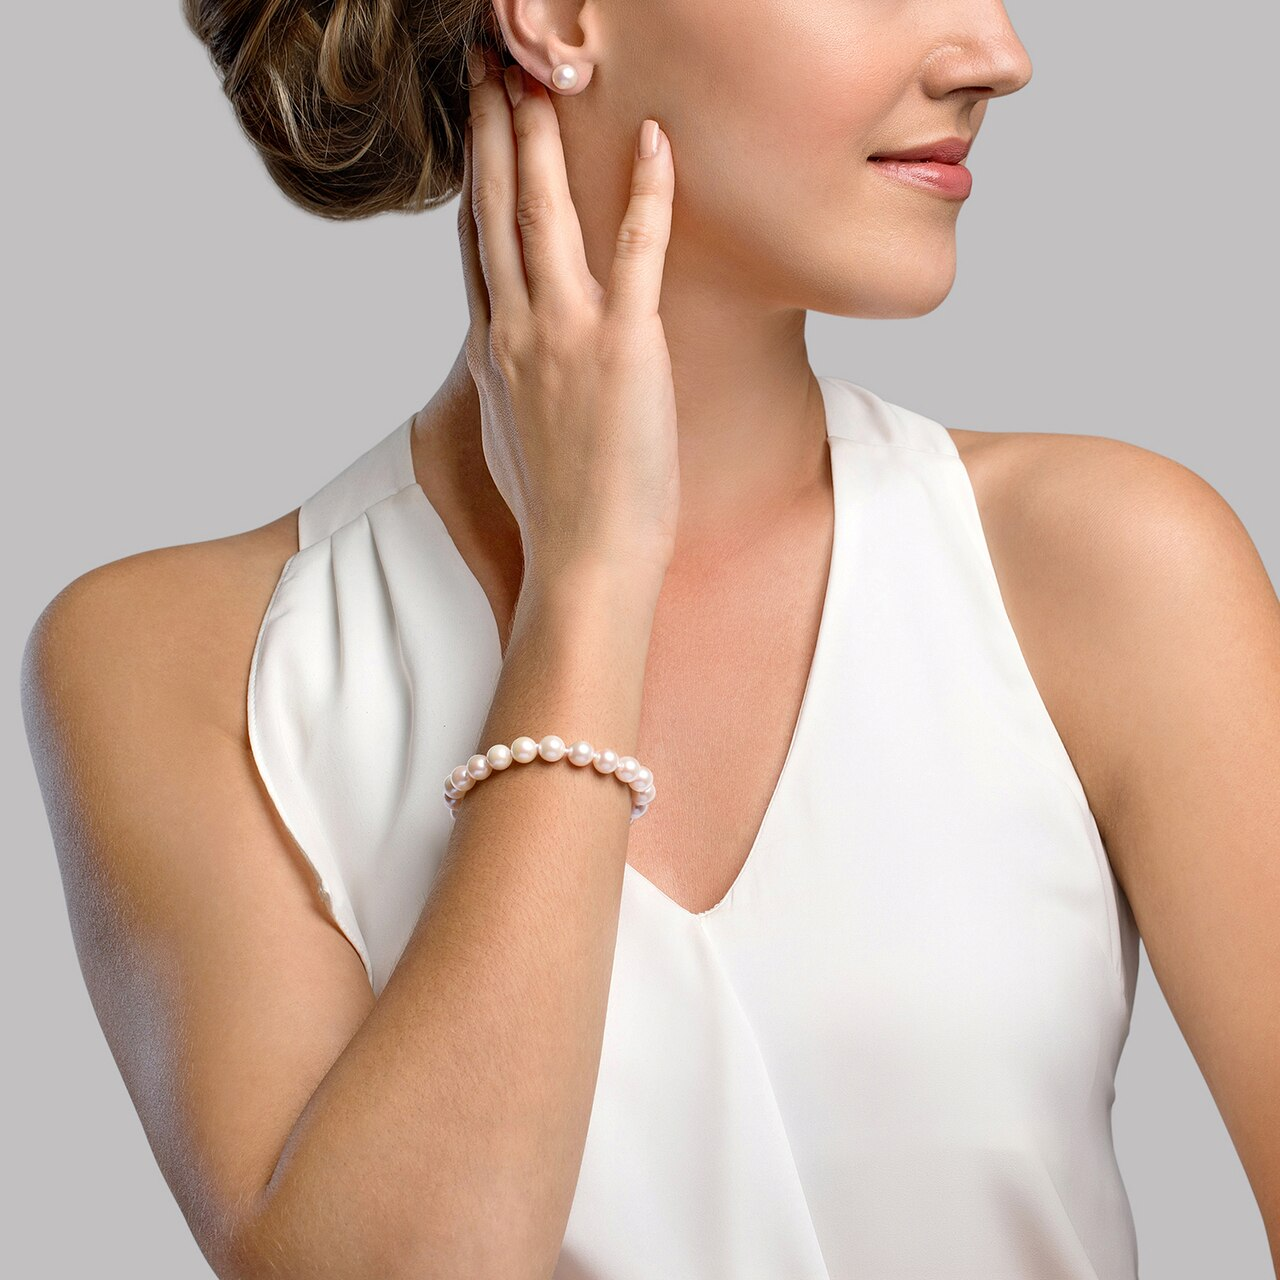 This gorgeous bracelet features 8.0-9.0mm white Freshwater pearls, handpicked for their luminous luster